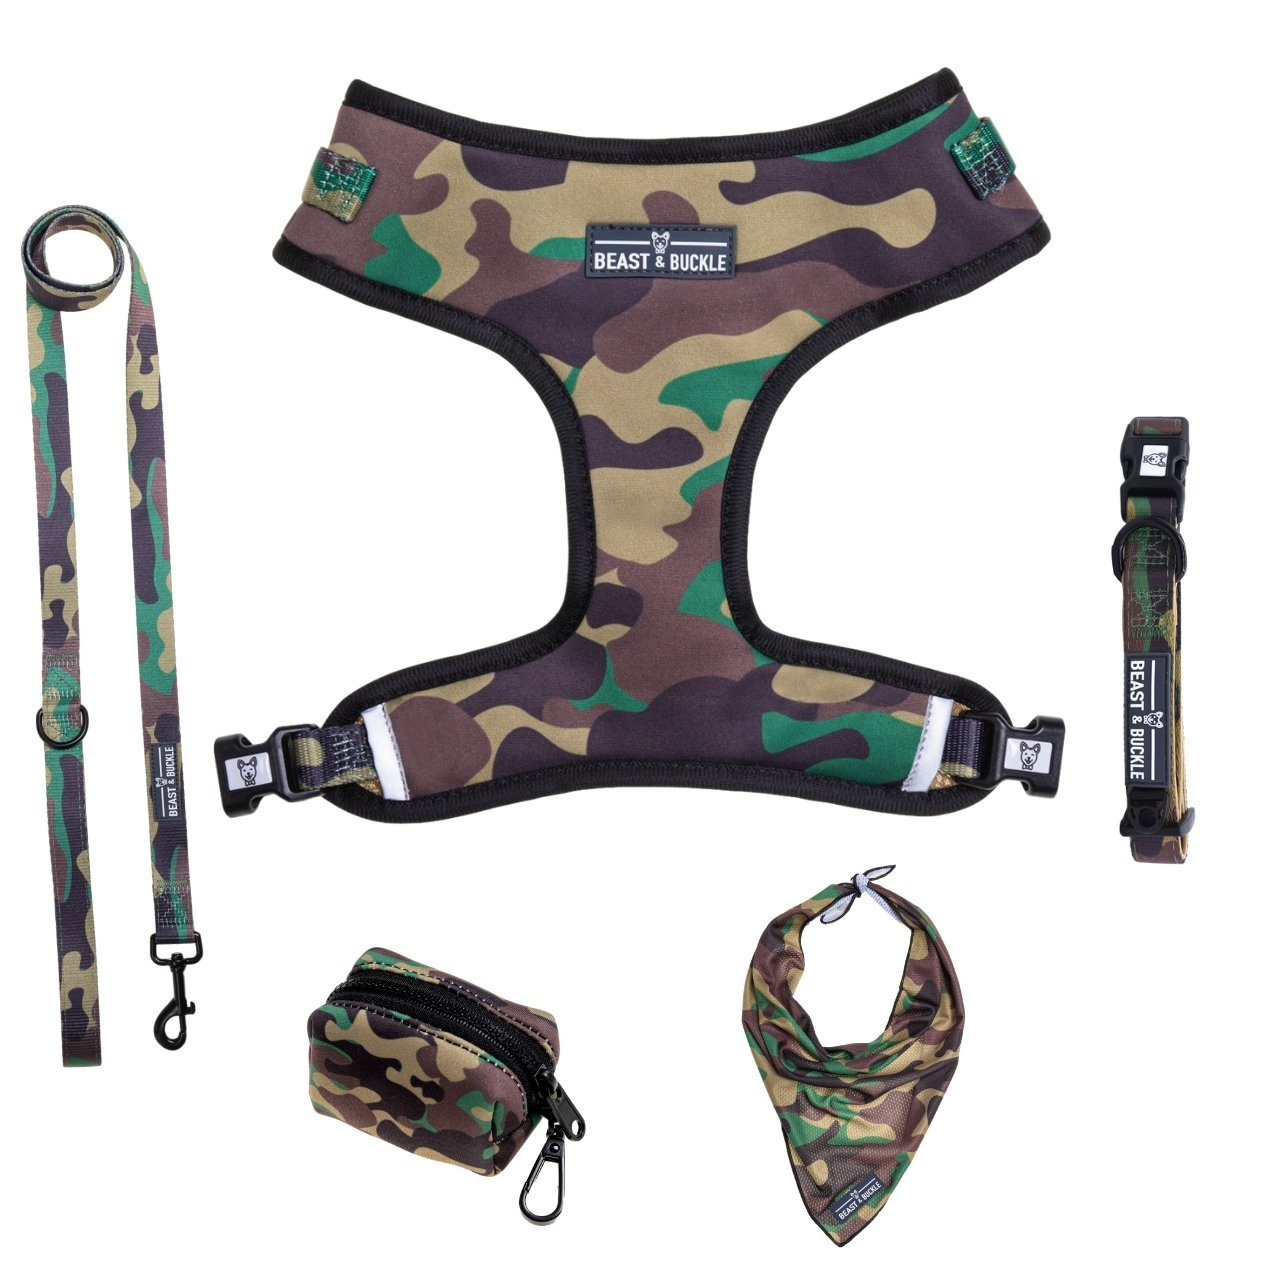 Camo Collection Bundle - Beast & Buckle